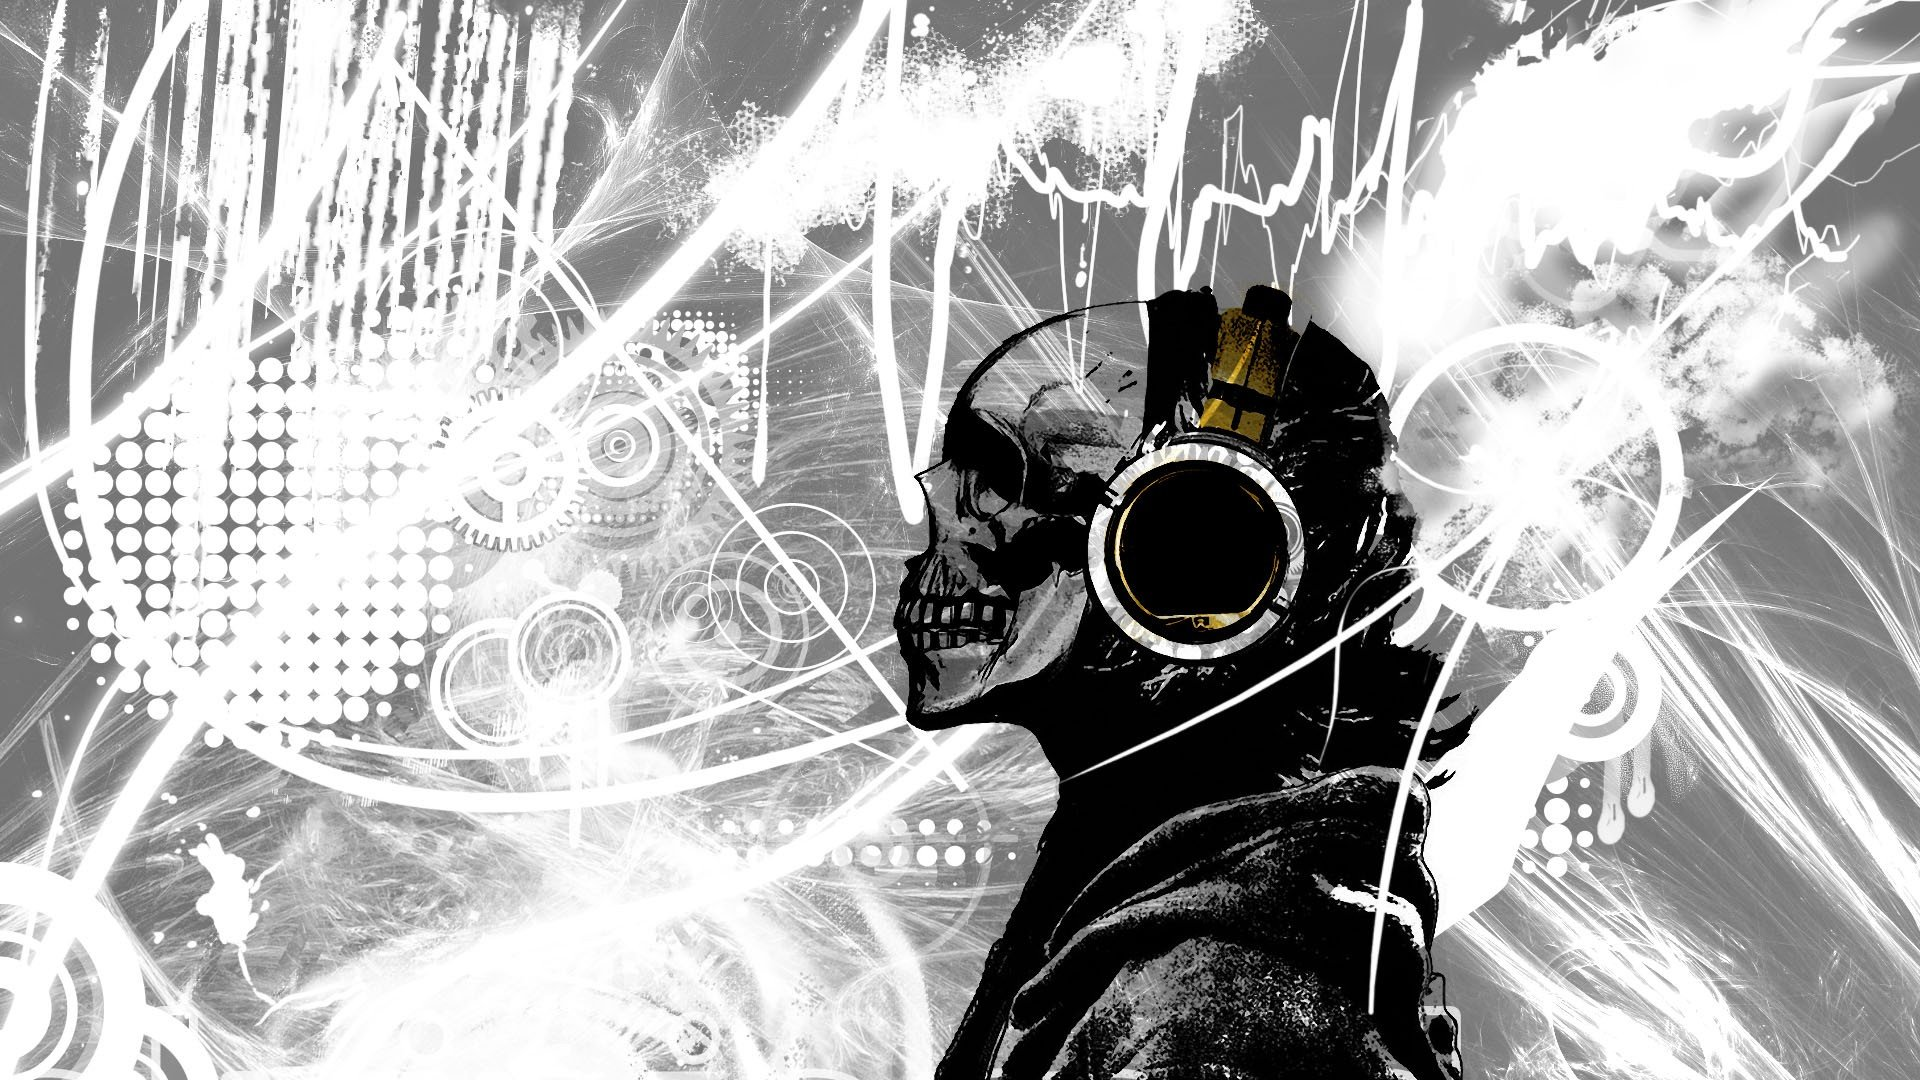 Sfondo Wallpaper Hd Skull Music   1920 x 1080   Hd Widescreen 1920x1080